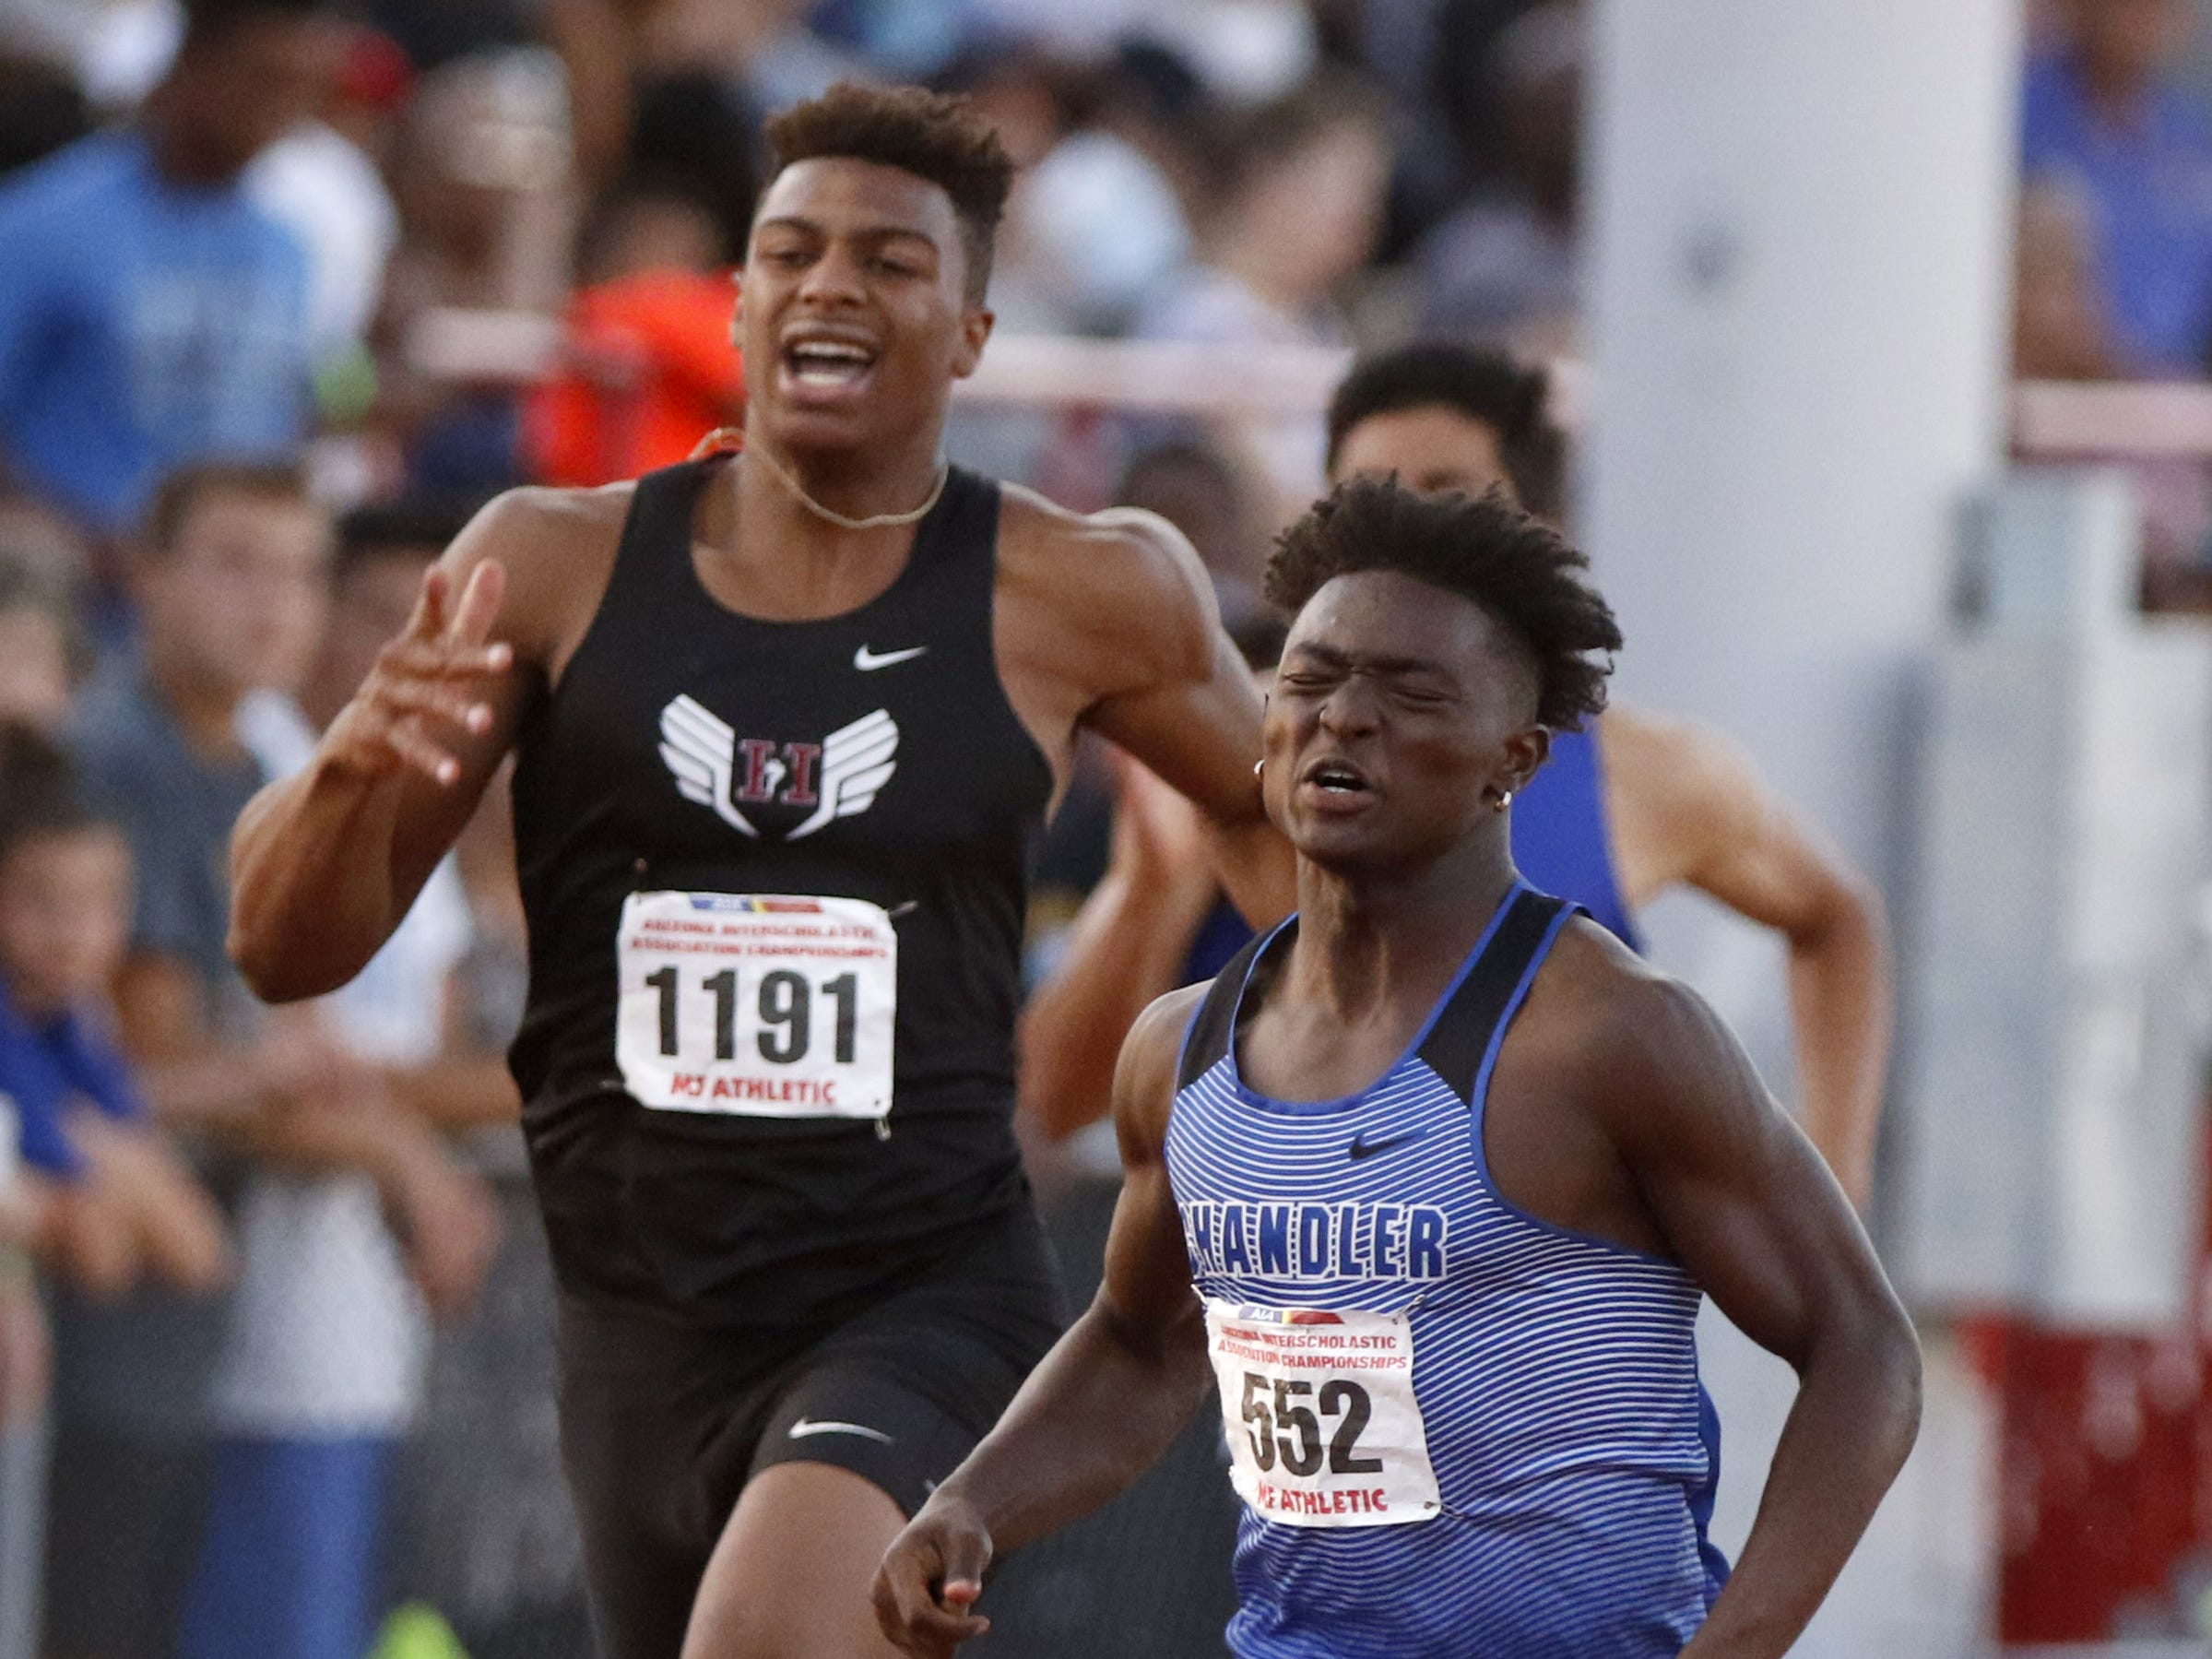 Chandler's Quaron Adams finishes second ahead of Hamilton's Brenden Rice in the Division I 200 meters championship during the 2019 Arizona State Track and Field Championship at Mesa Community College in Mesa, Arizona, May 04, 2019.